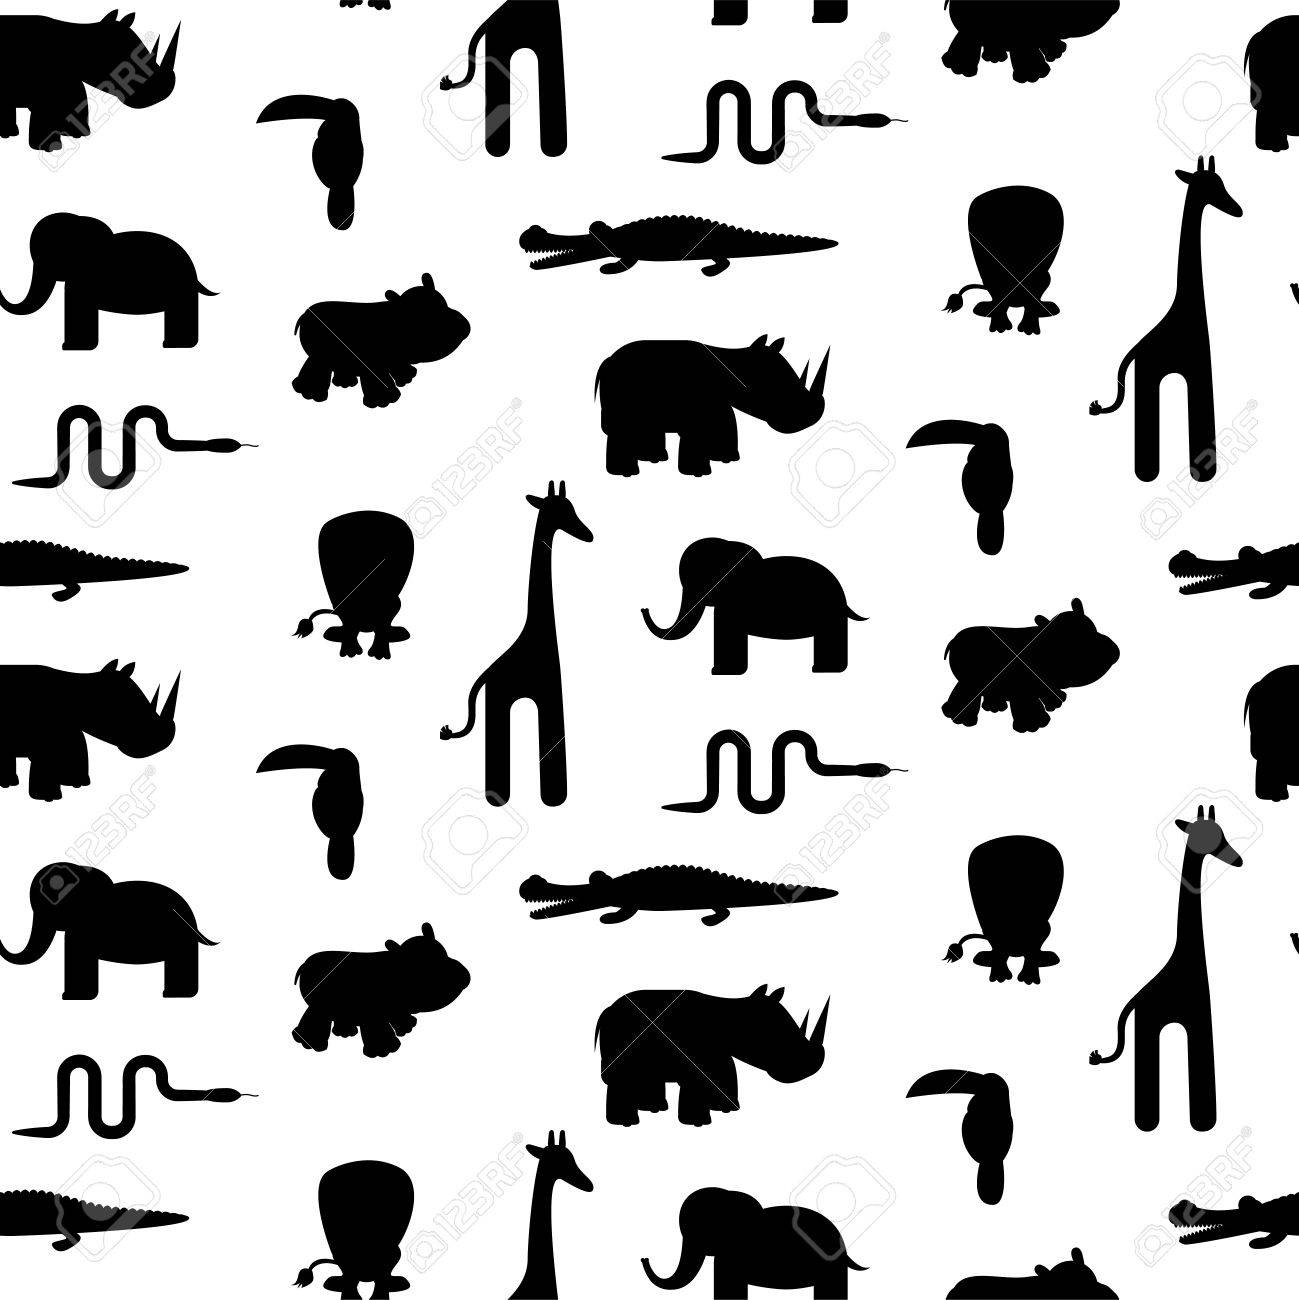 Zoo Animal Silhouettes Seamless Pattern Vector  Royalty Free